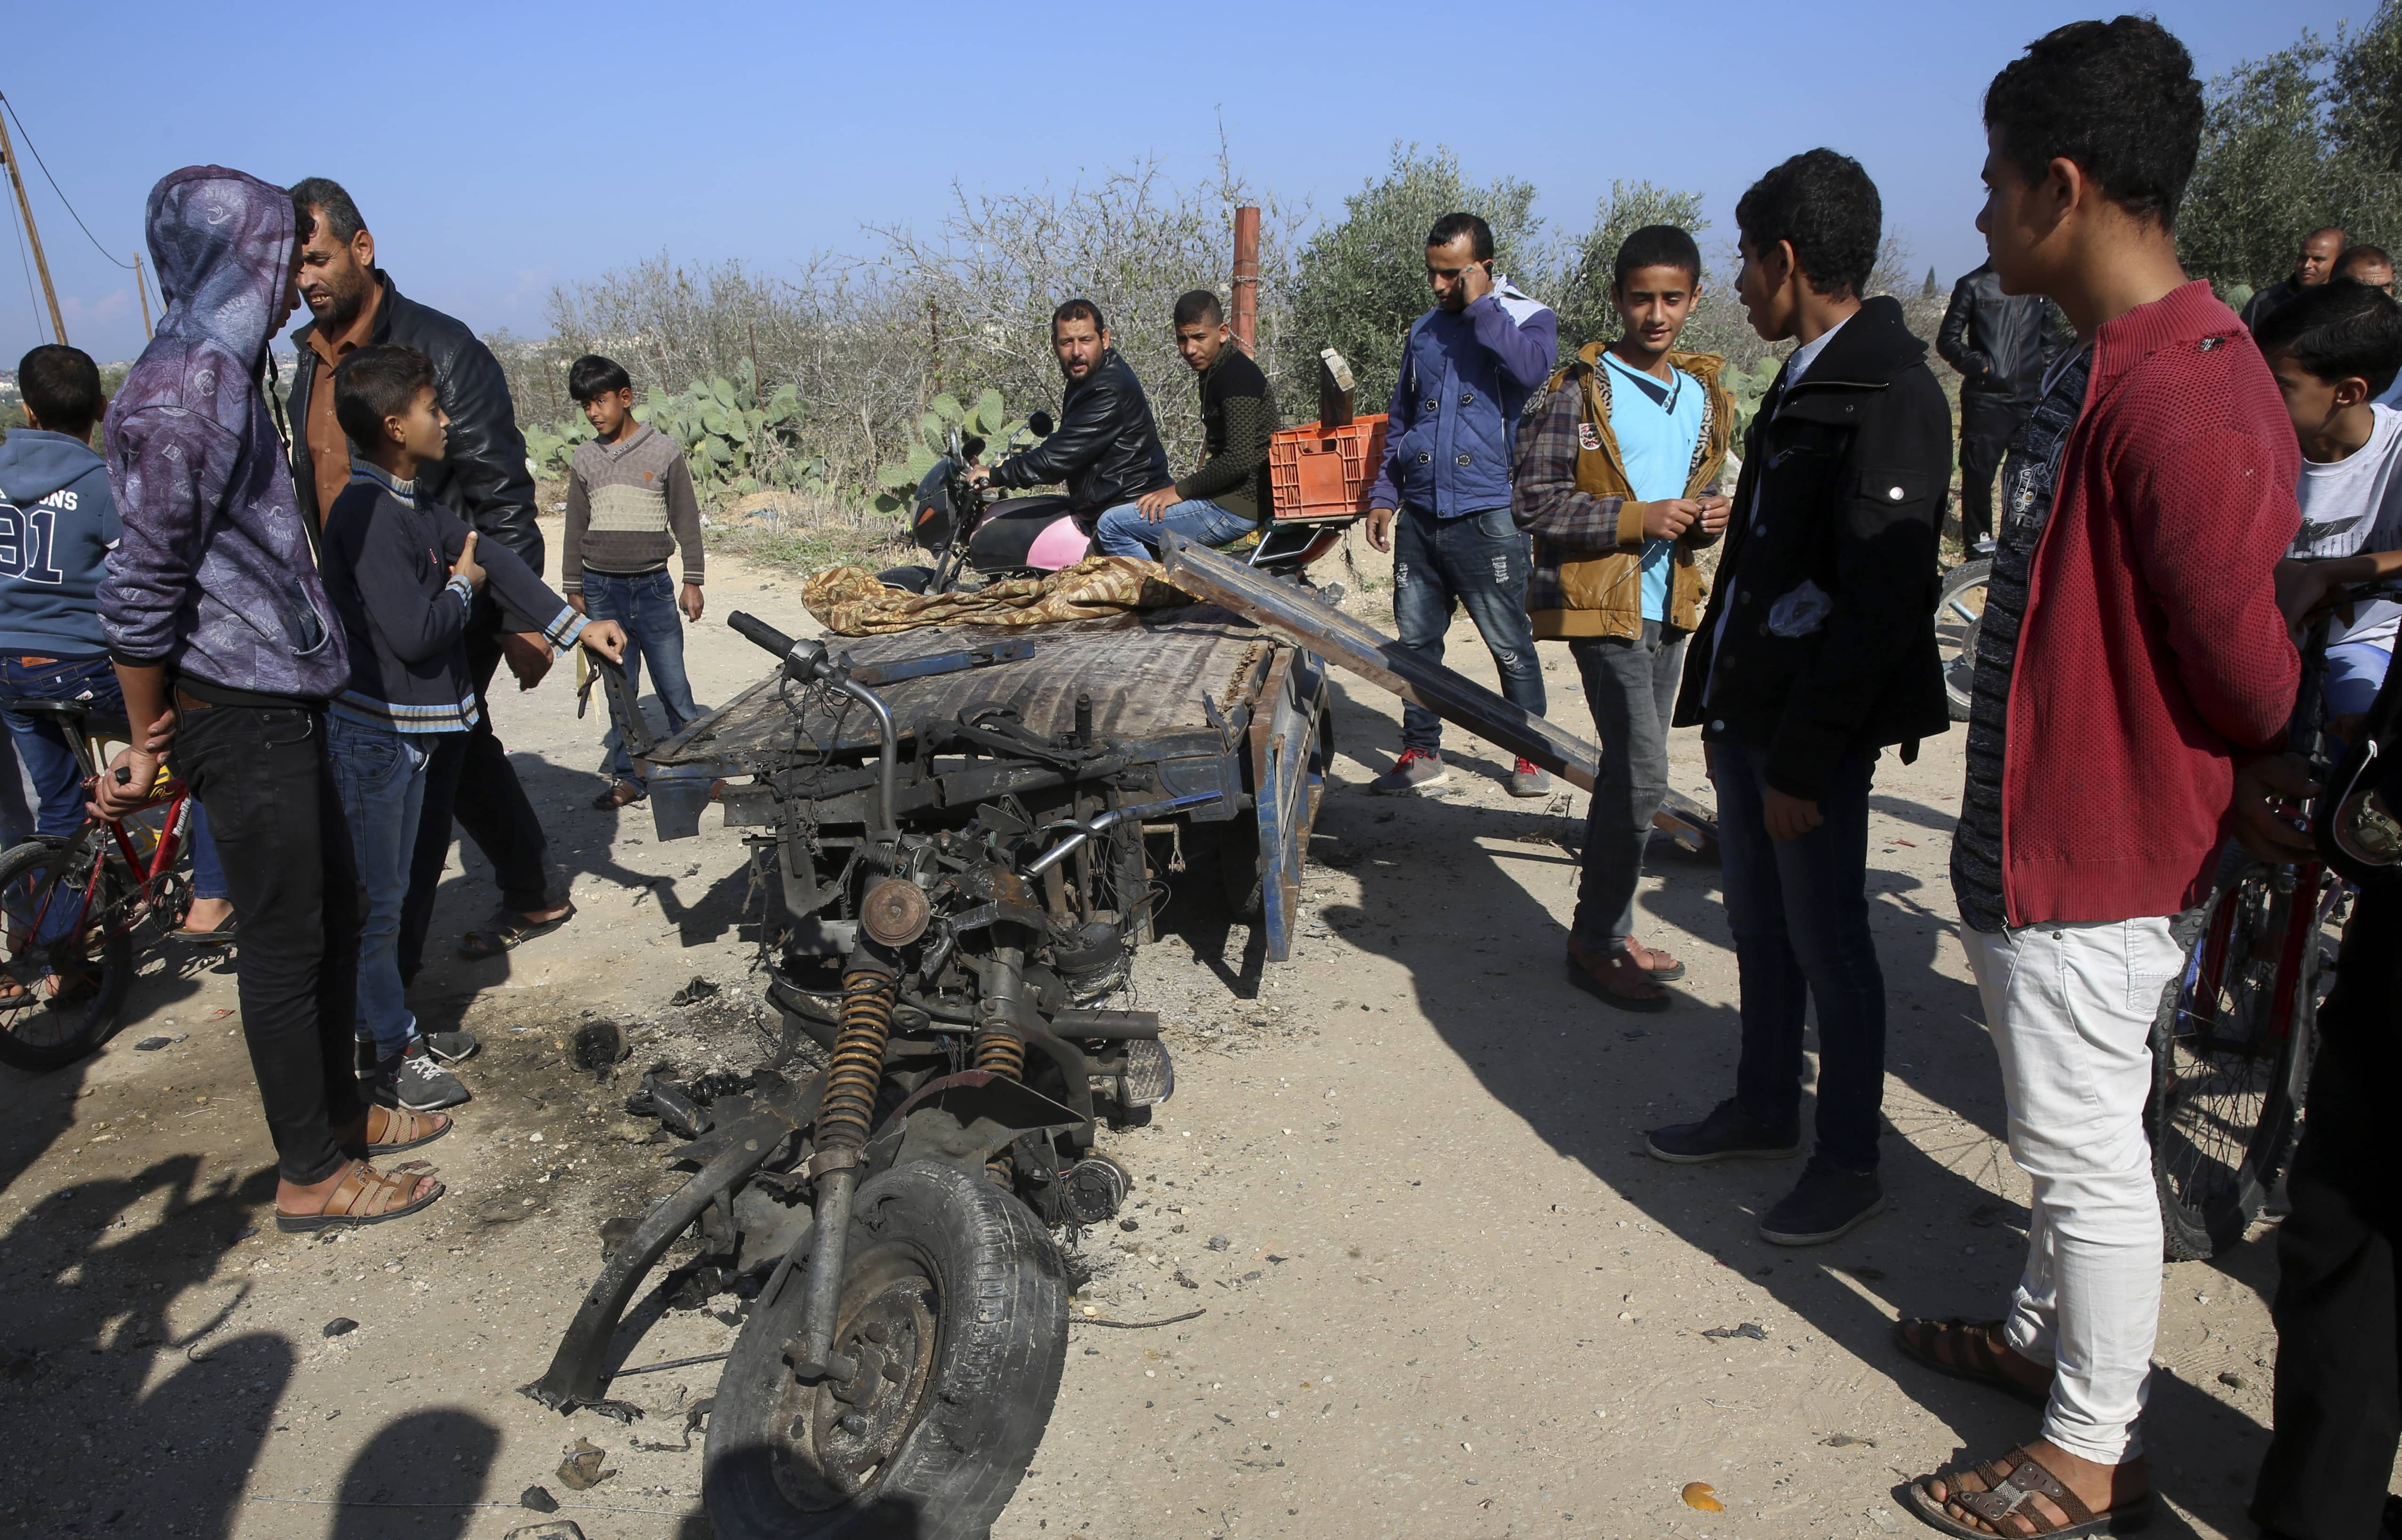 Photo of Palestinians inspecting a vehicle that was destroyed